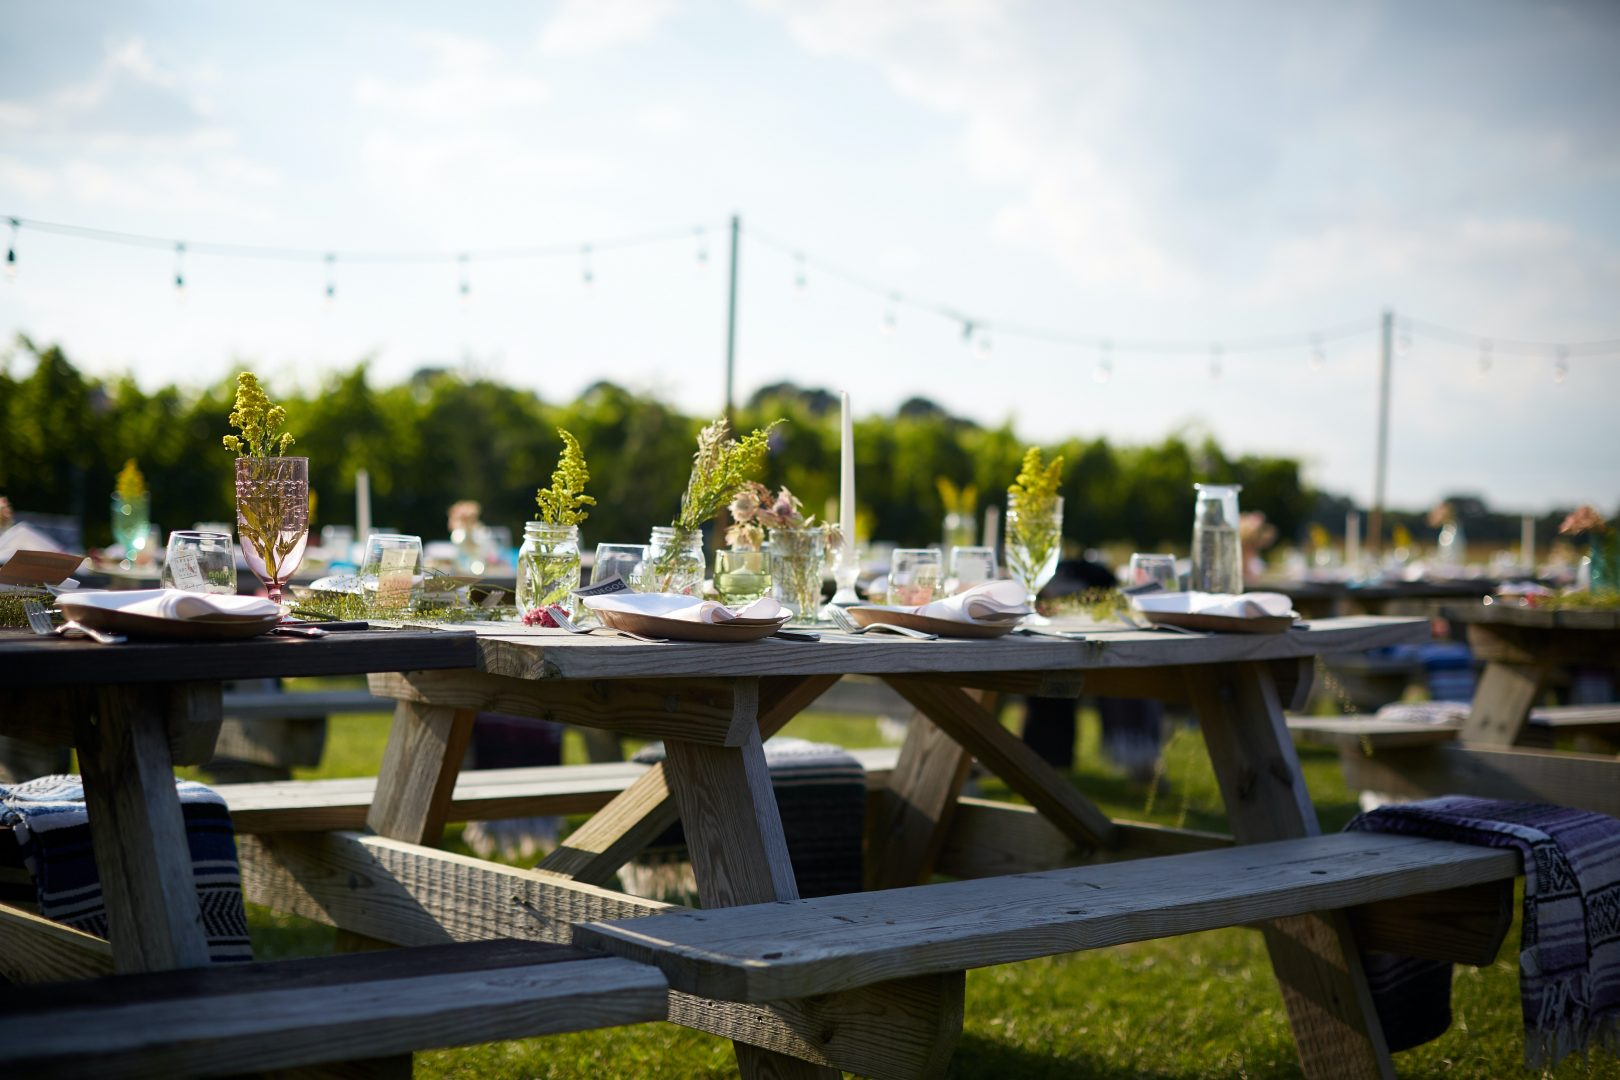 brown wooden table with chairs on green grass field during daytime